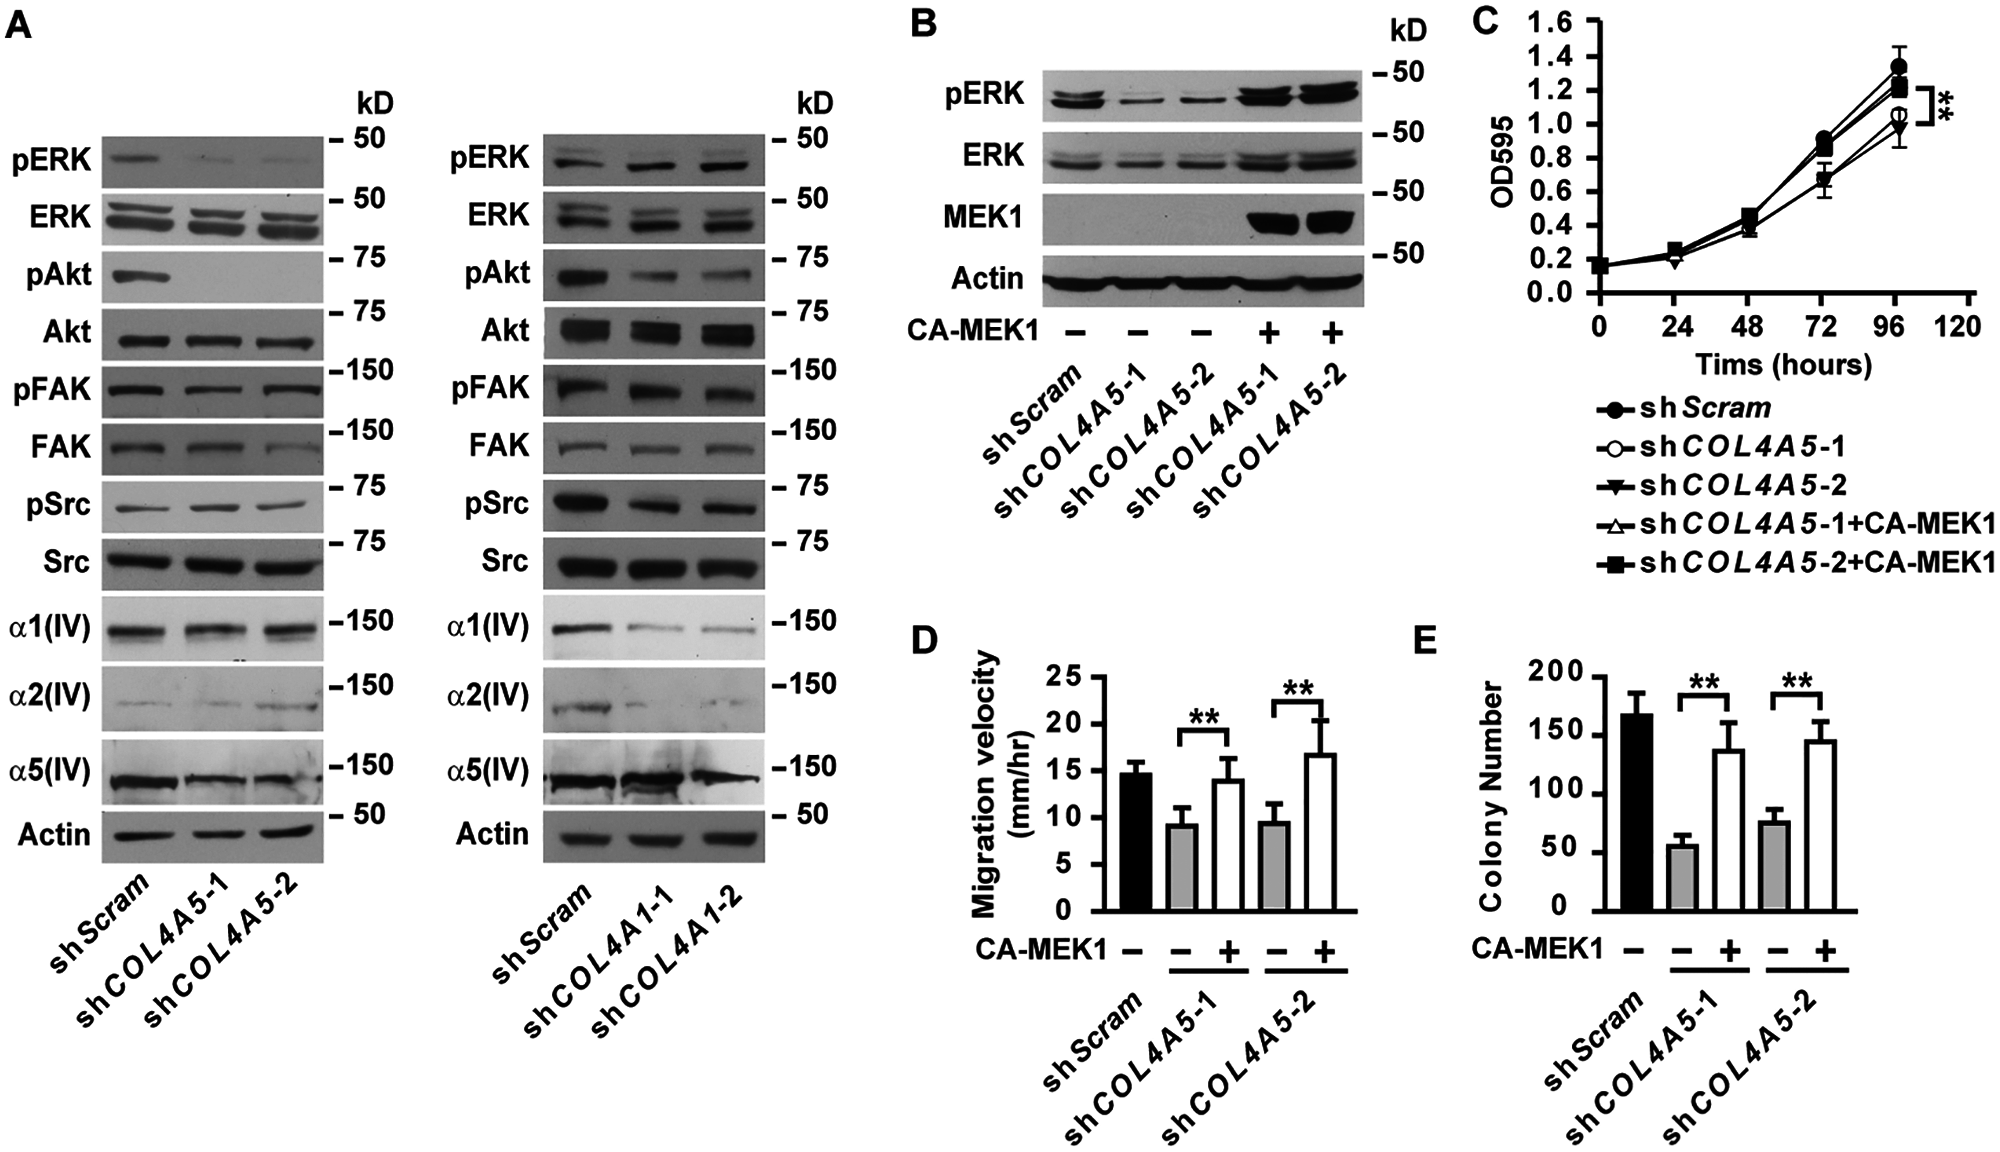 α5(IV), but not α1(IV), deficiency results in impaired activation of ERK.